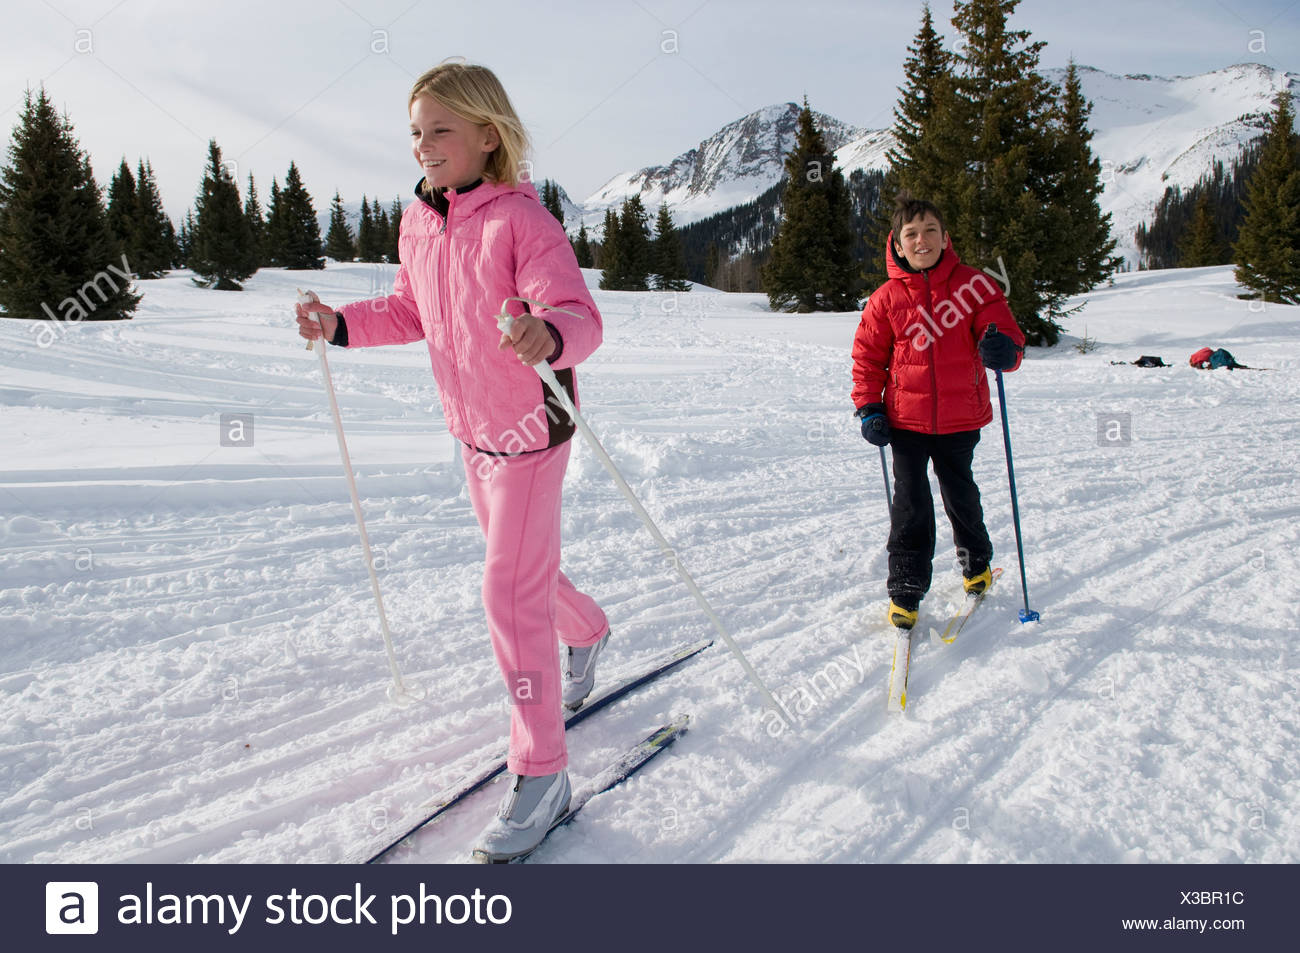 A young girl and boy cross country skiing in the San Juan National Forest, Colorado. - Stock Image